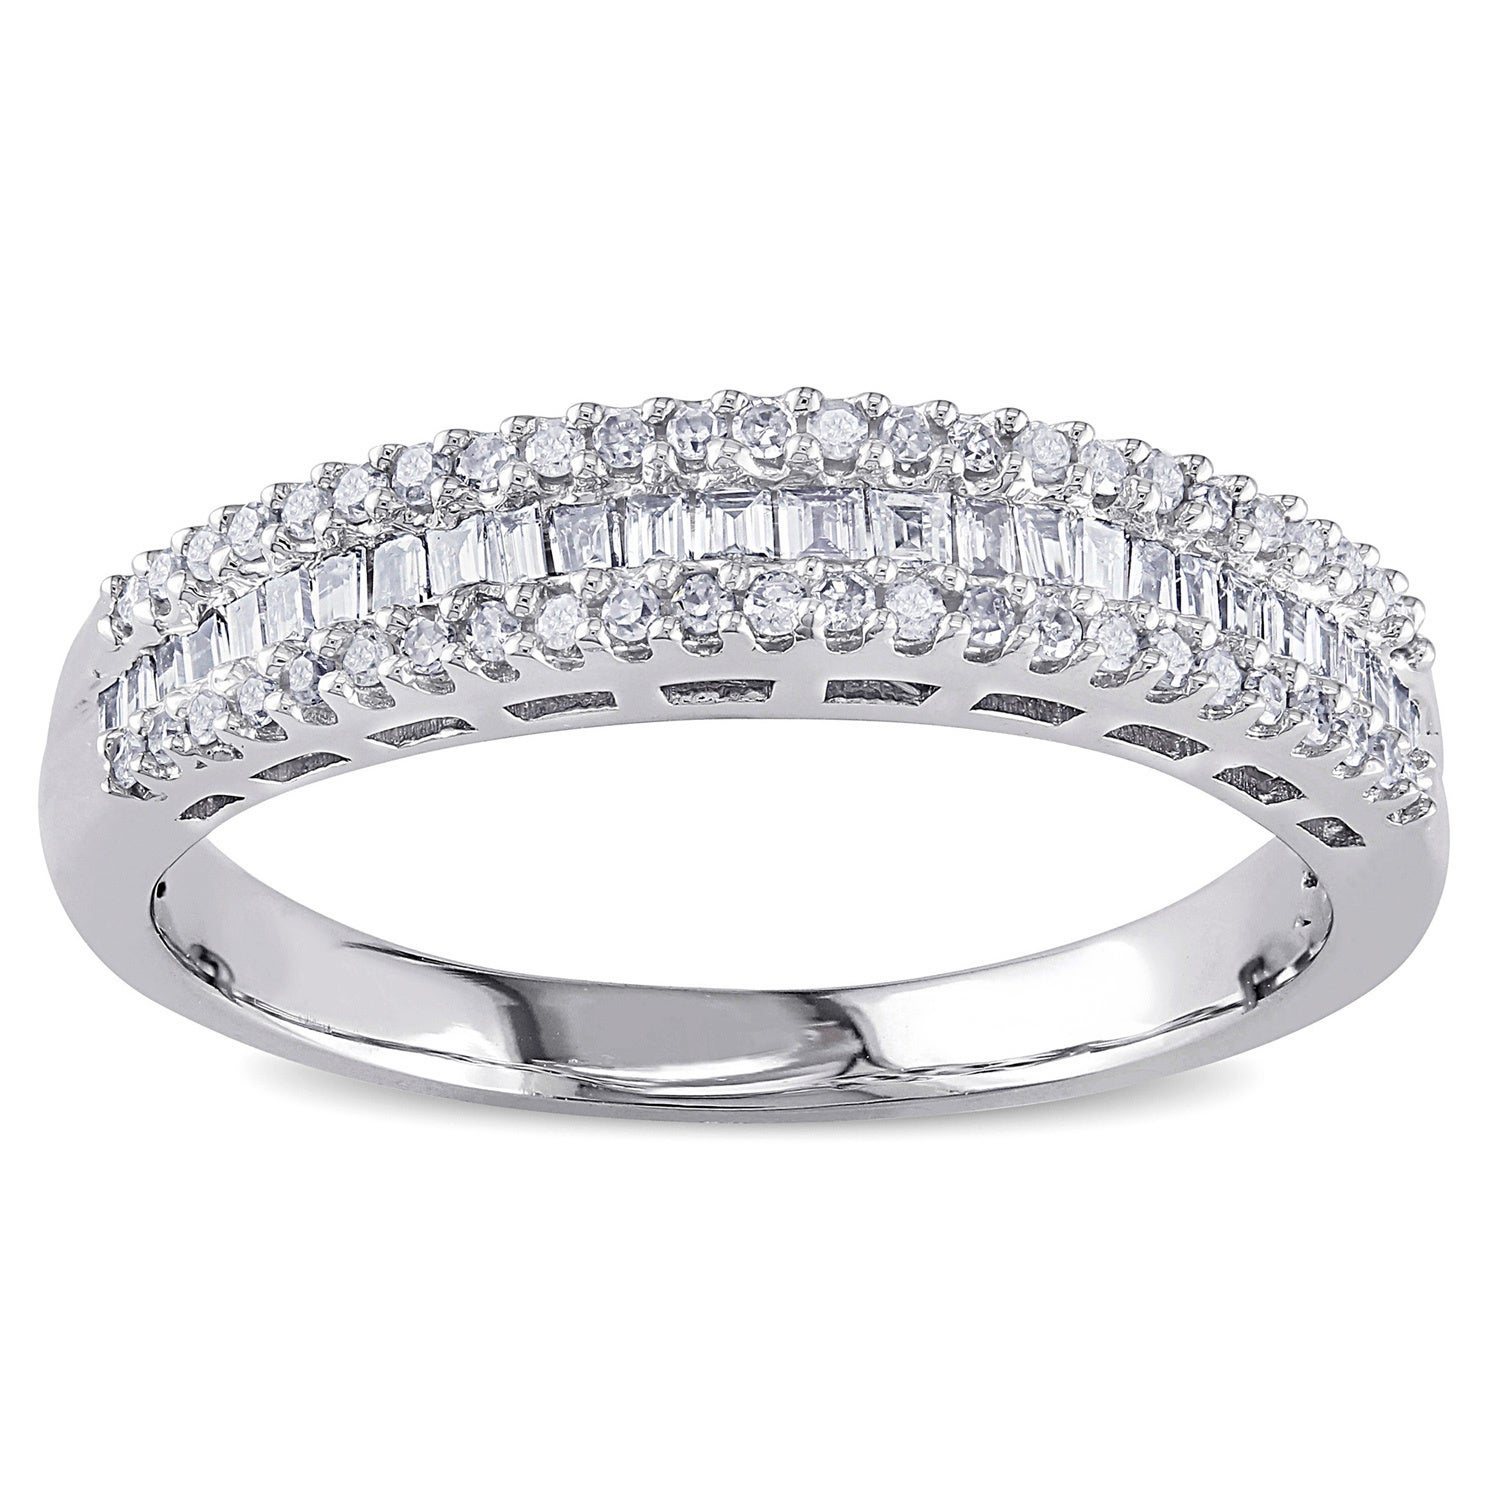 Miadora 14k White Gold 1/3ct Tdw Baguette Diamond Anniversary Band Regarding 2020 Baguette And Round Diamond Anniversary Bands In White Gold (View 14 of 25)